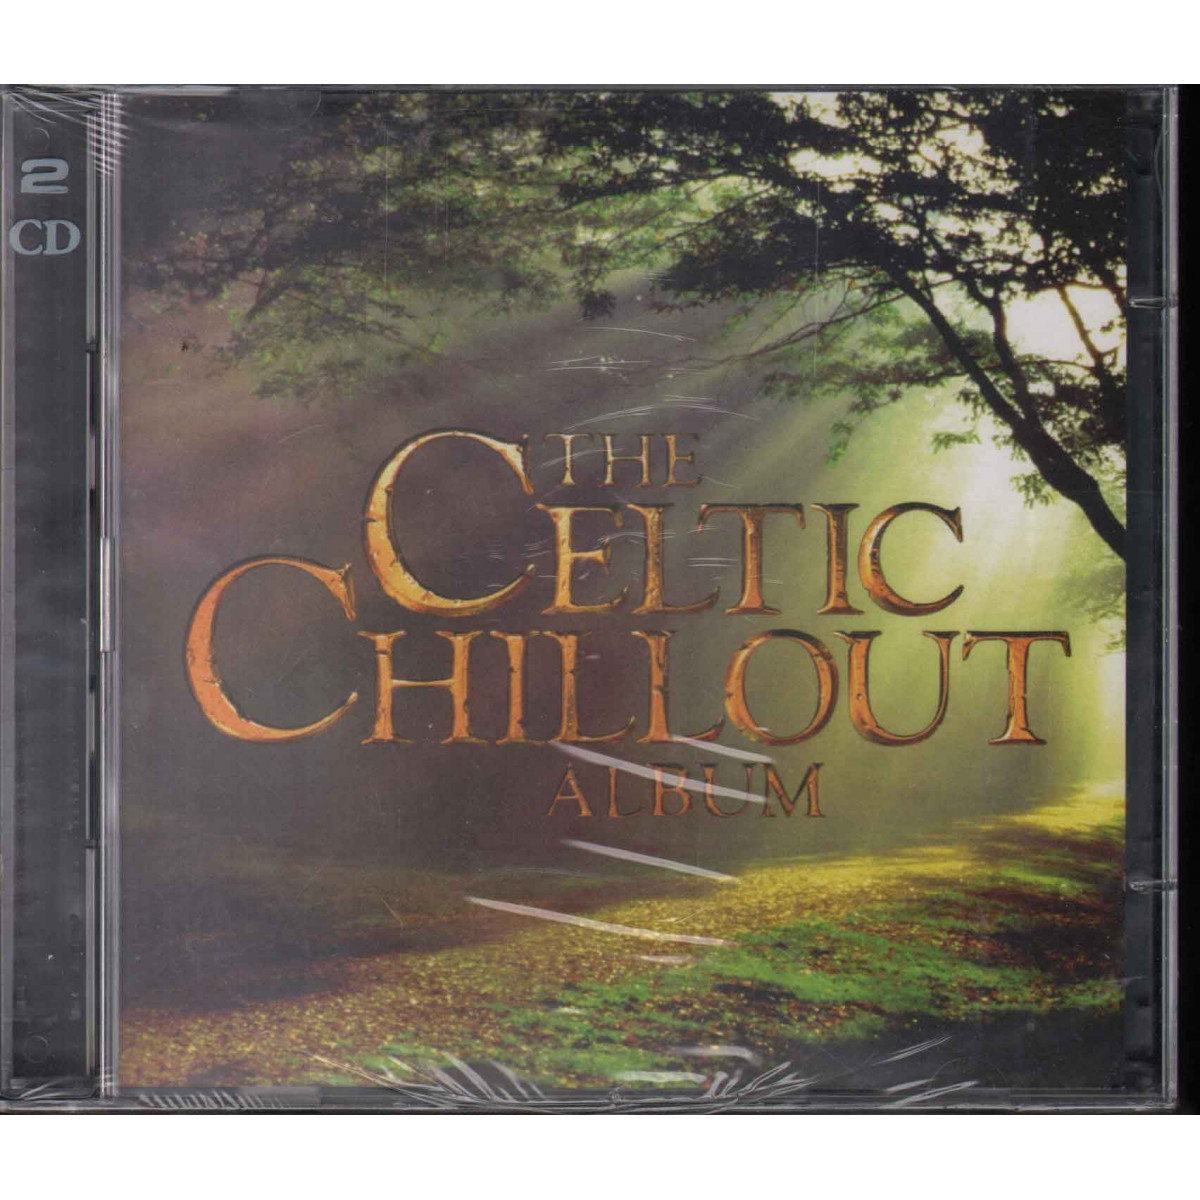 Ryan & Rachel O'Donnell ‎2 CD The Celtic Chillout Album Sigillato 0602498077597